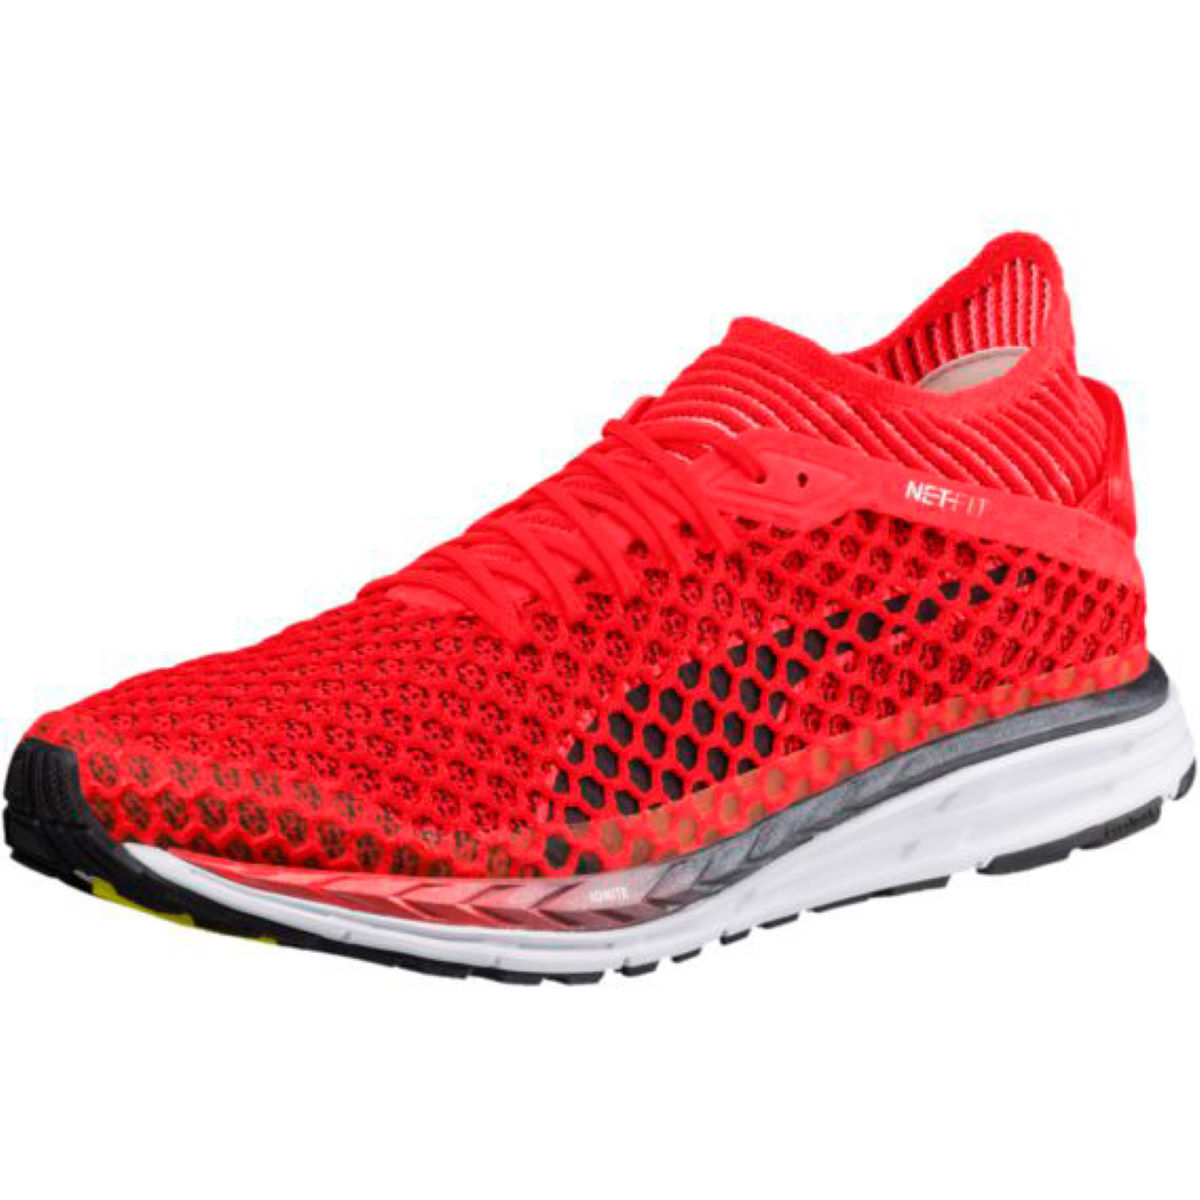 Chaussures Puma Speed Ignite Netfit 2 (rouges) - UK 9